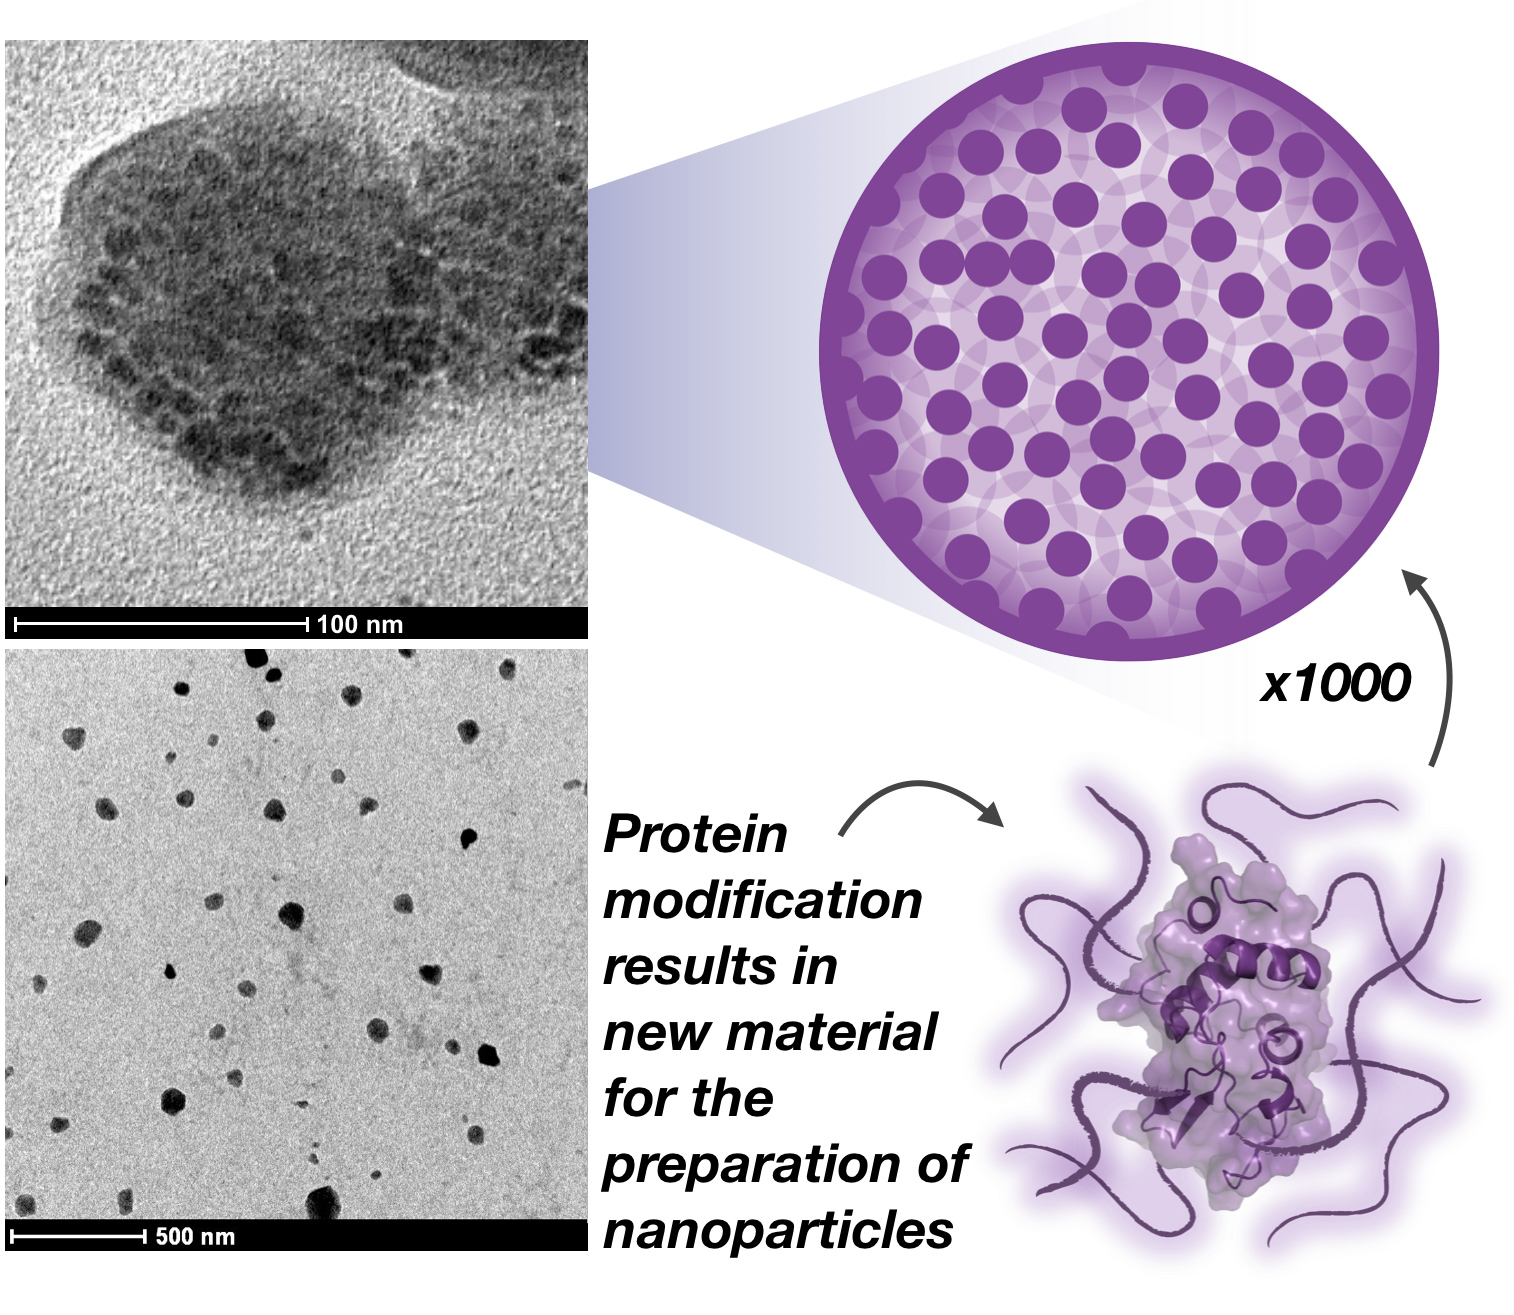 protein nanoparticles biopolymer Wichlab Peter Wich